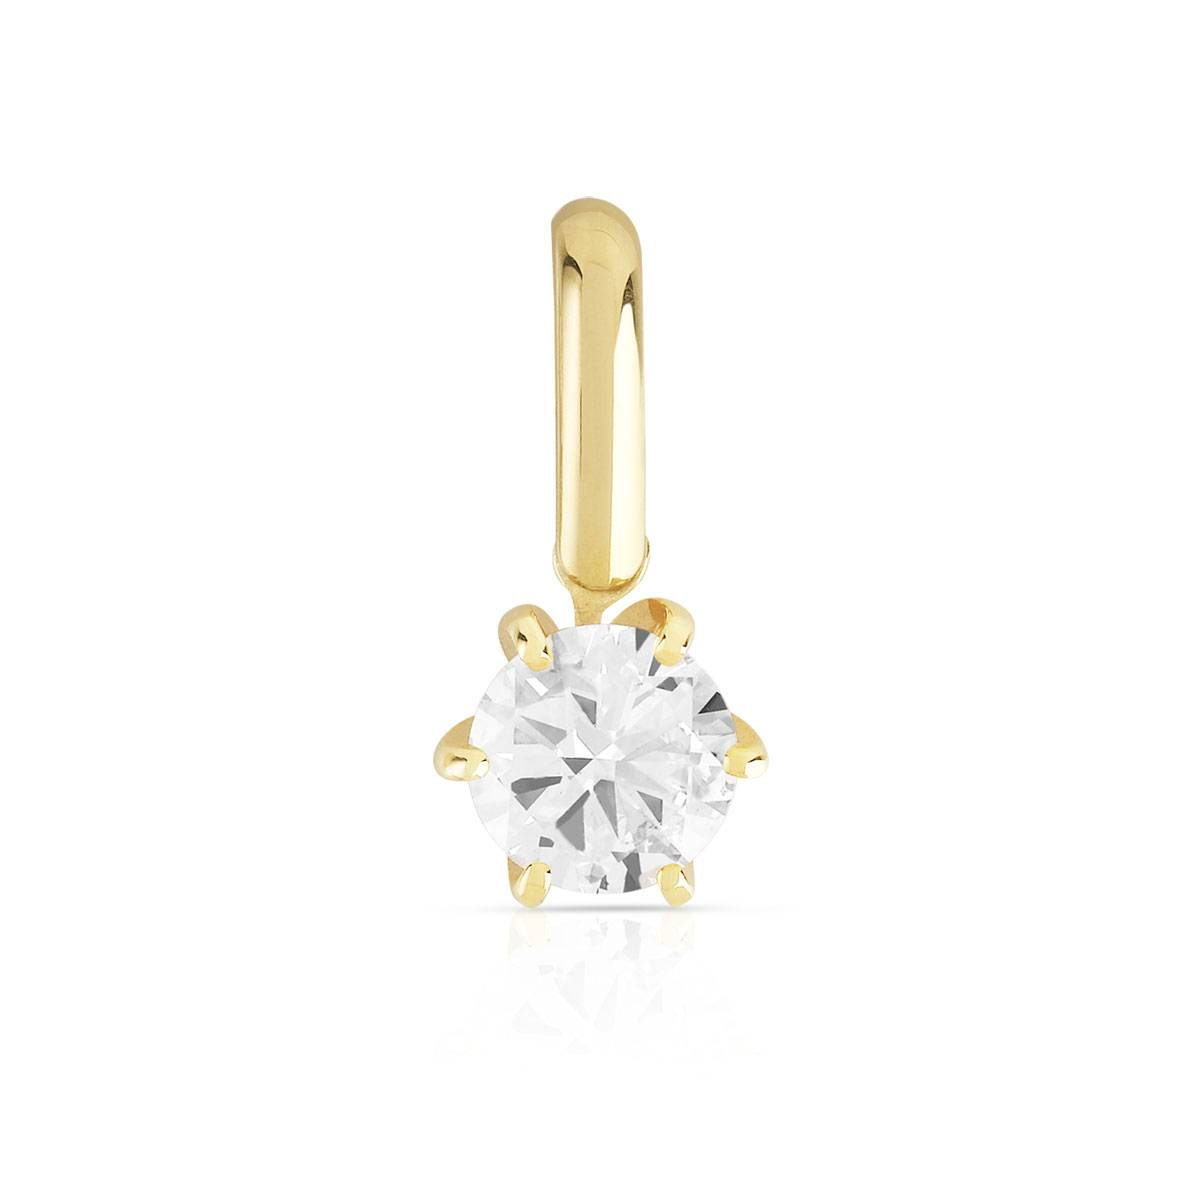 MATY Pendentif or 750 diamant synthétique 0.30 carat- MATY